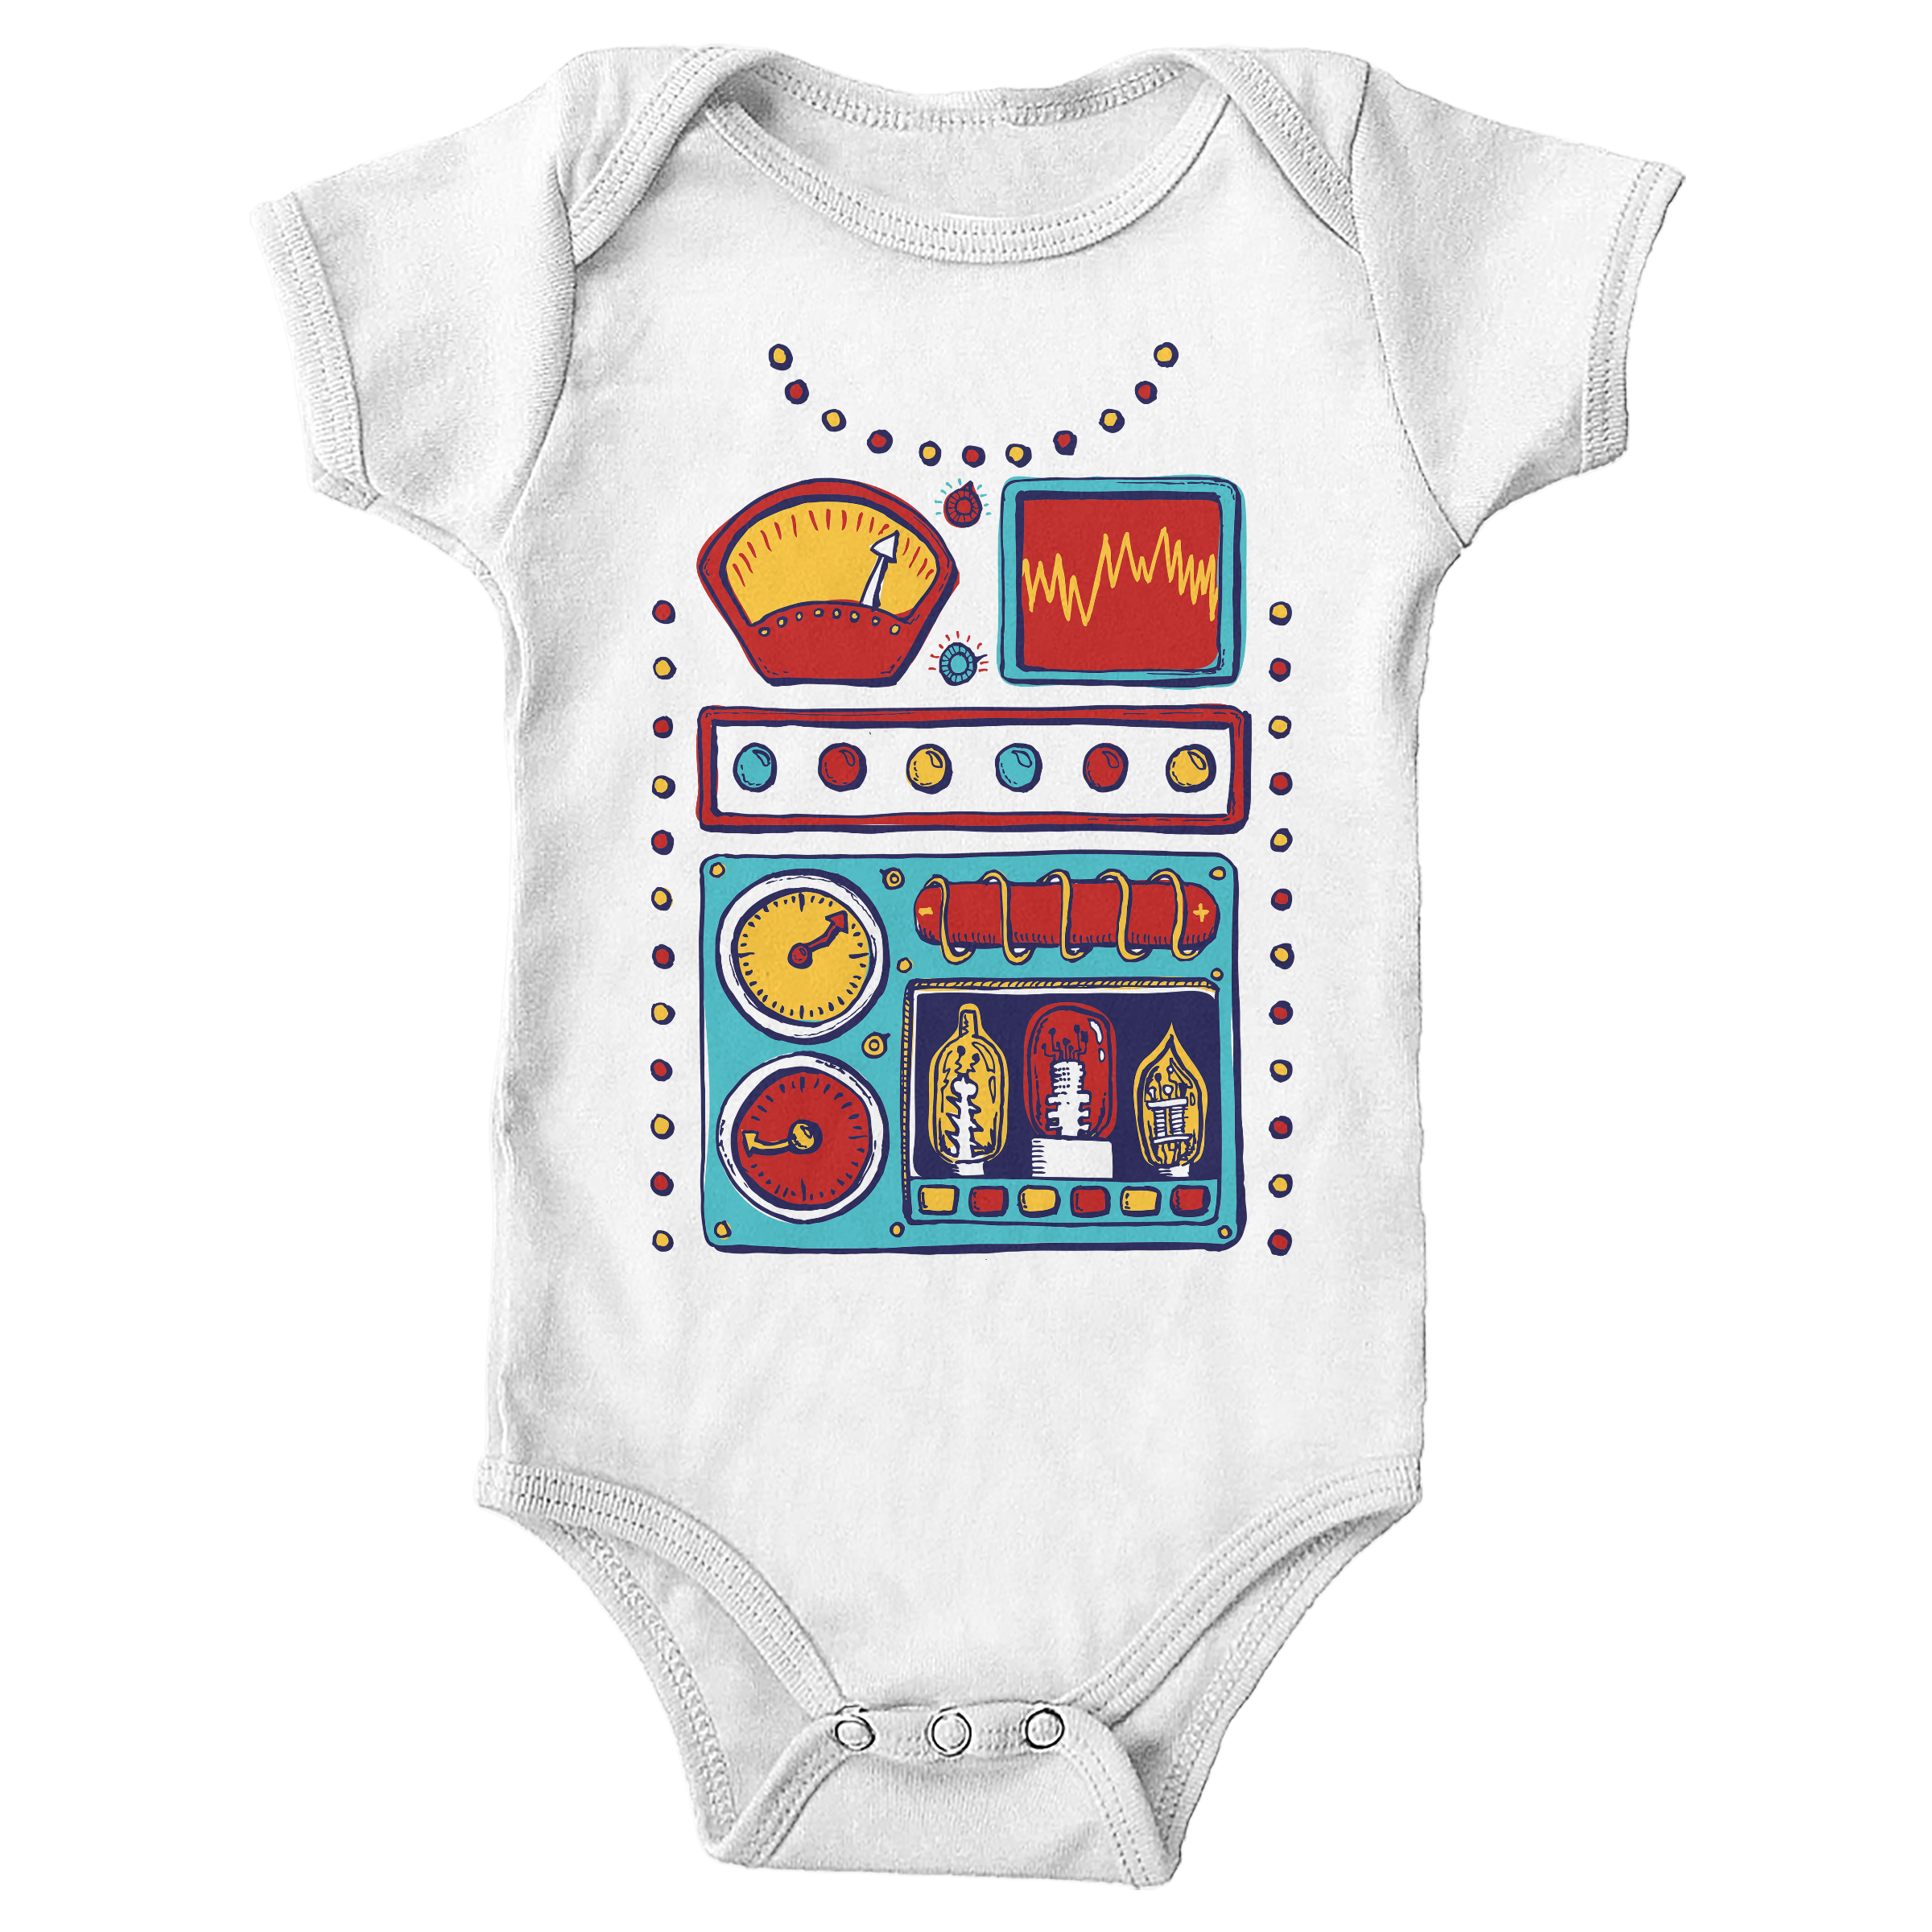 Retrobot 2000 White (Onesie)